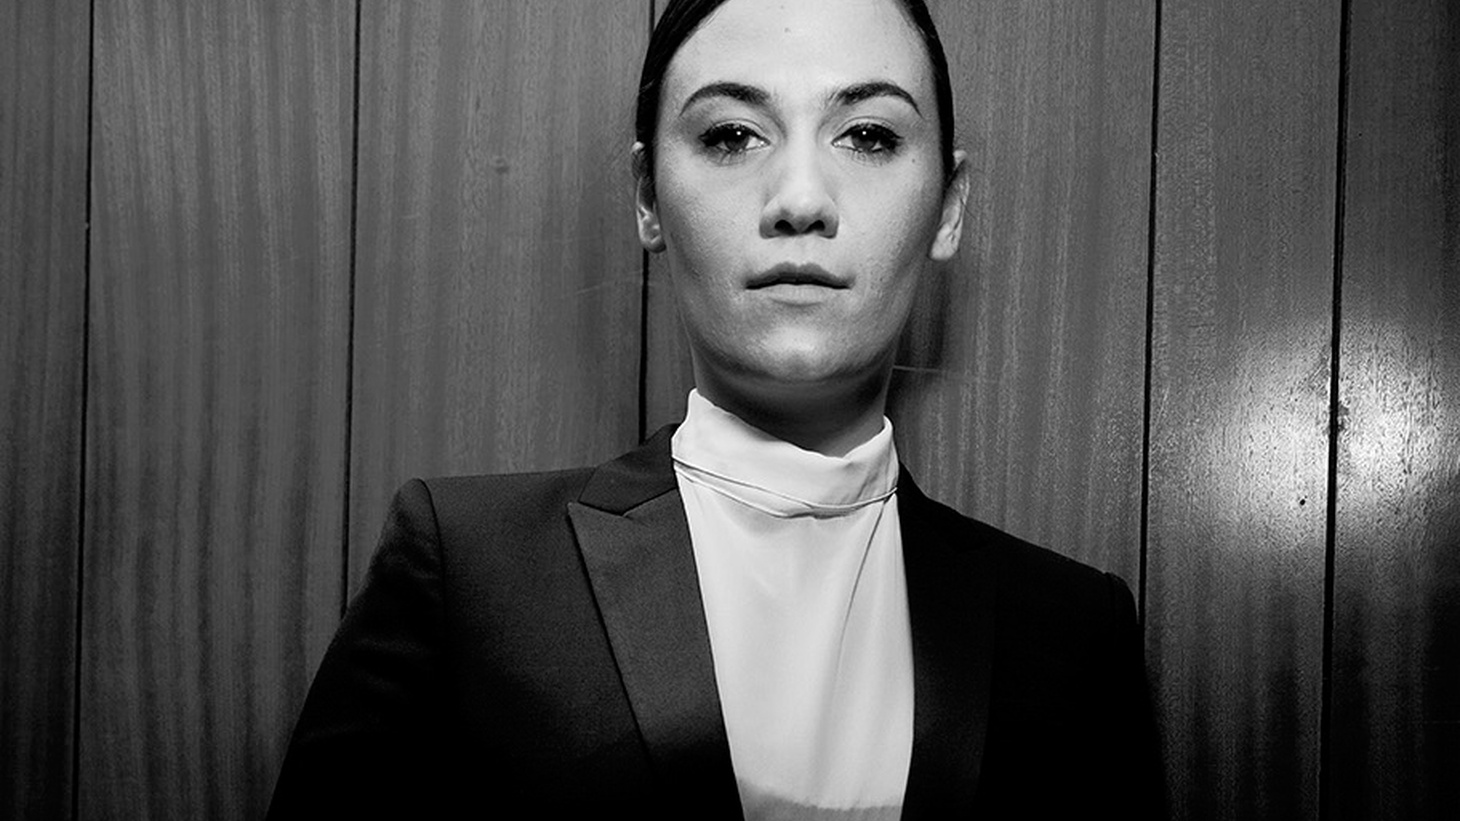 London-based songwriter Nadine Shah has a dark soulful voice and sings songs filled with drama about complicated love.